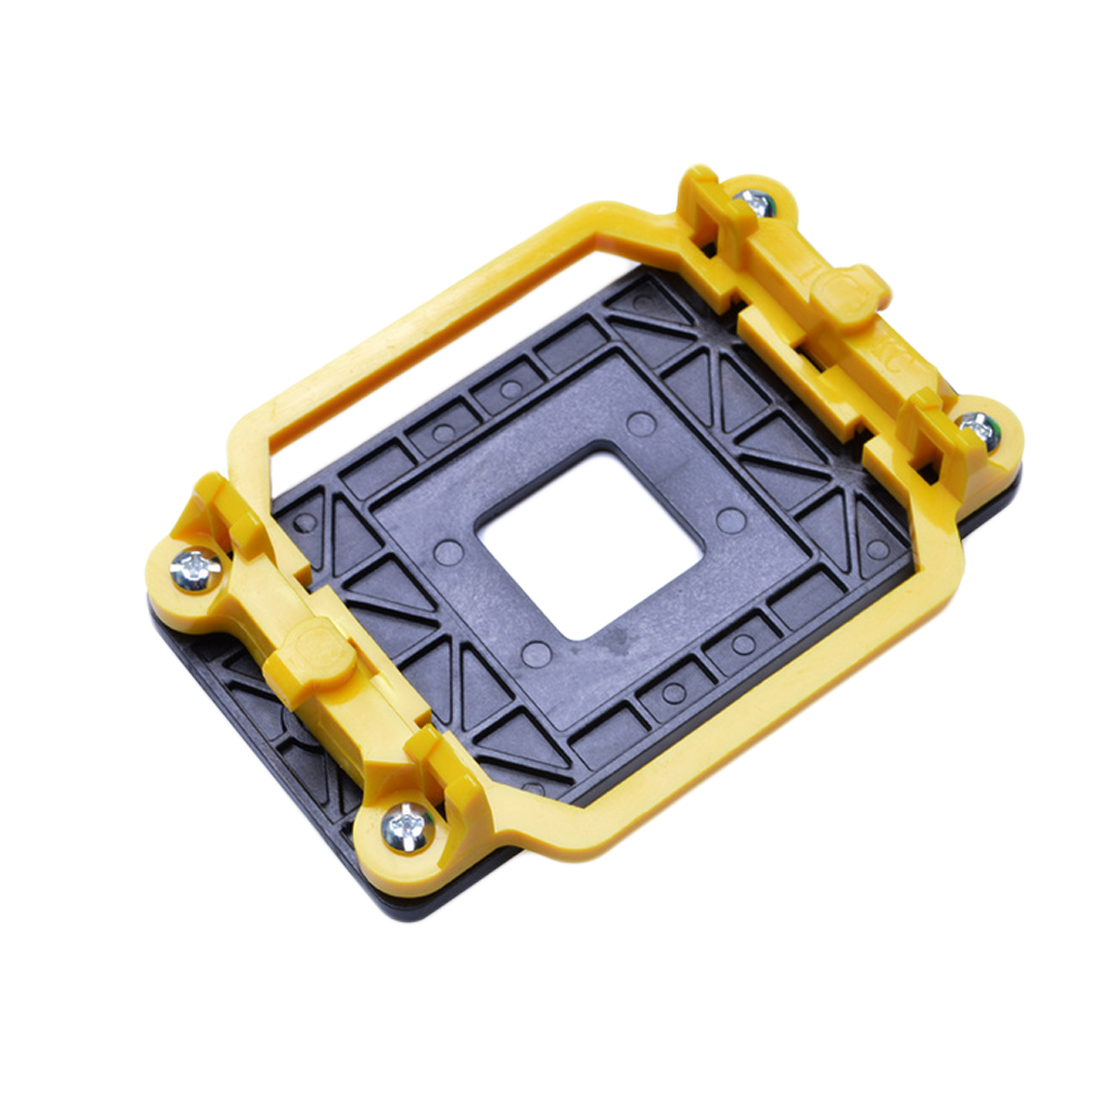 Etmakit Good Sale CPU Cooler Bracket Motherboard for AMD AM2/AM2+/AM3/AM3+/FM1/FM2/FM2+/940/939 Install the fastening image